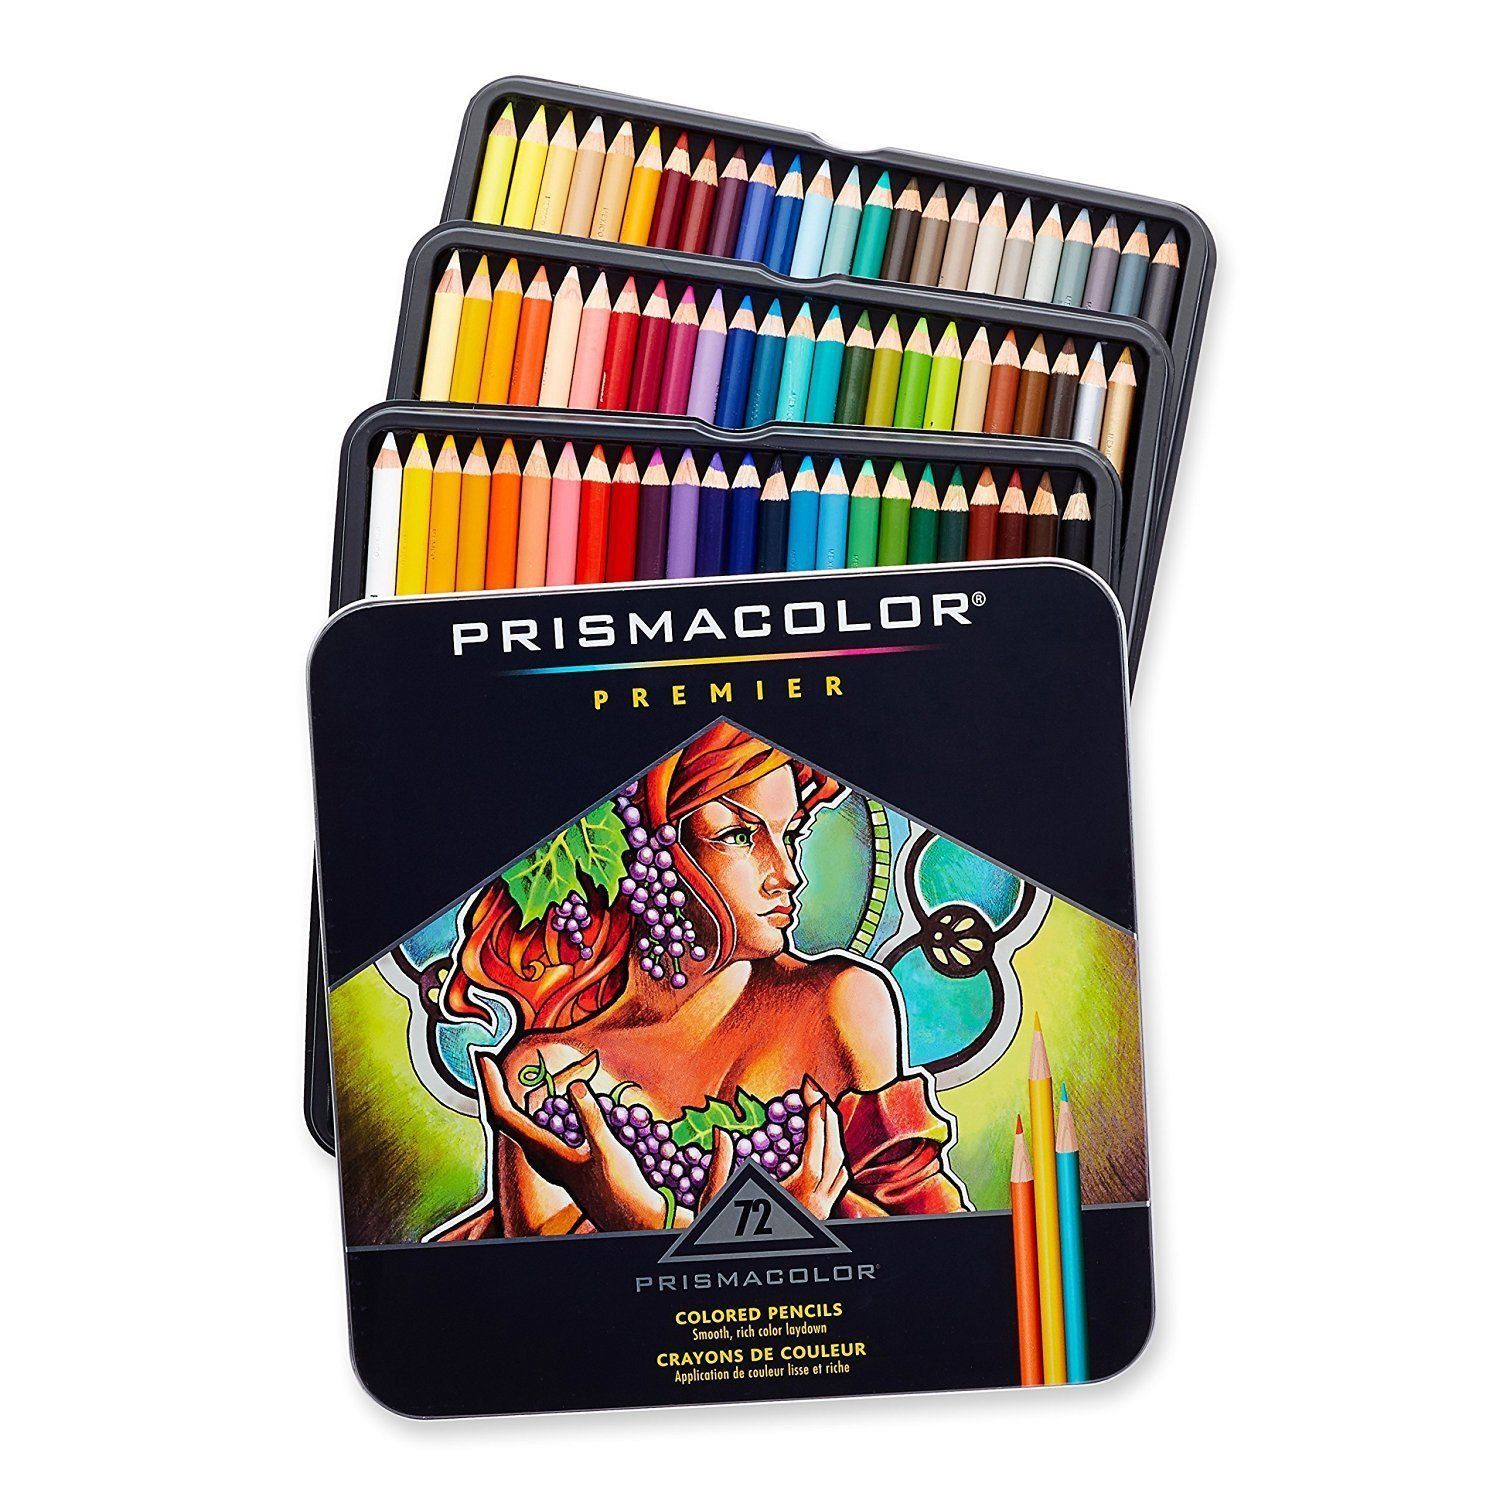 Prismacolor Premier Colored Pencils 72 Assorted Color Pencils